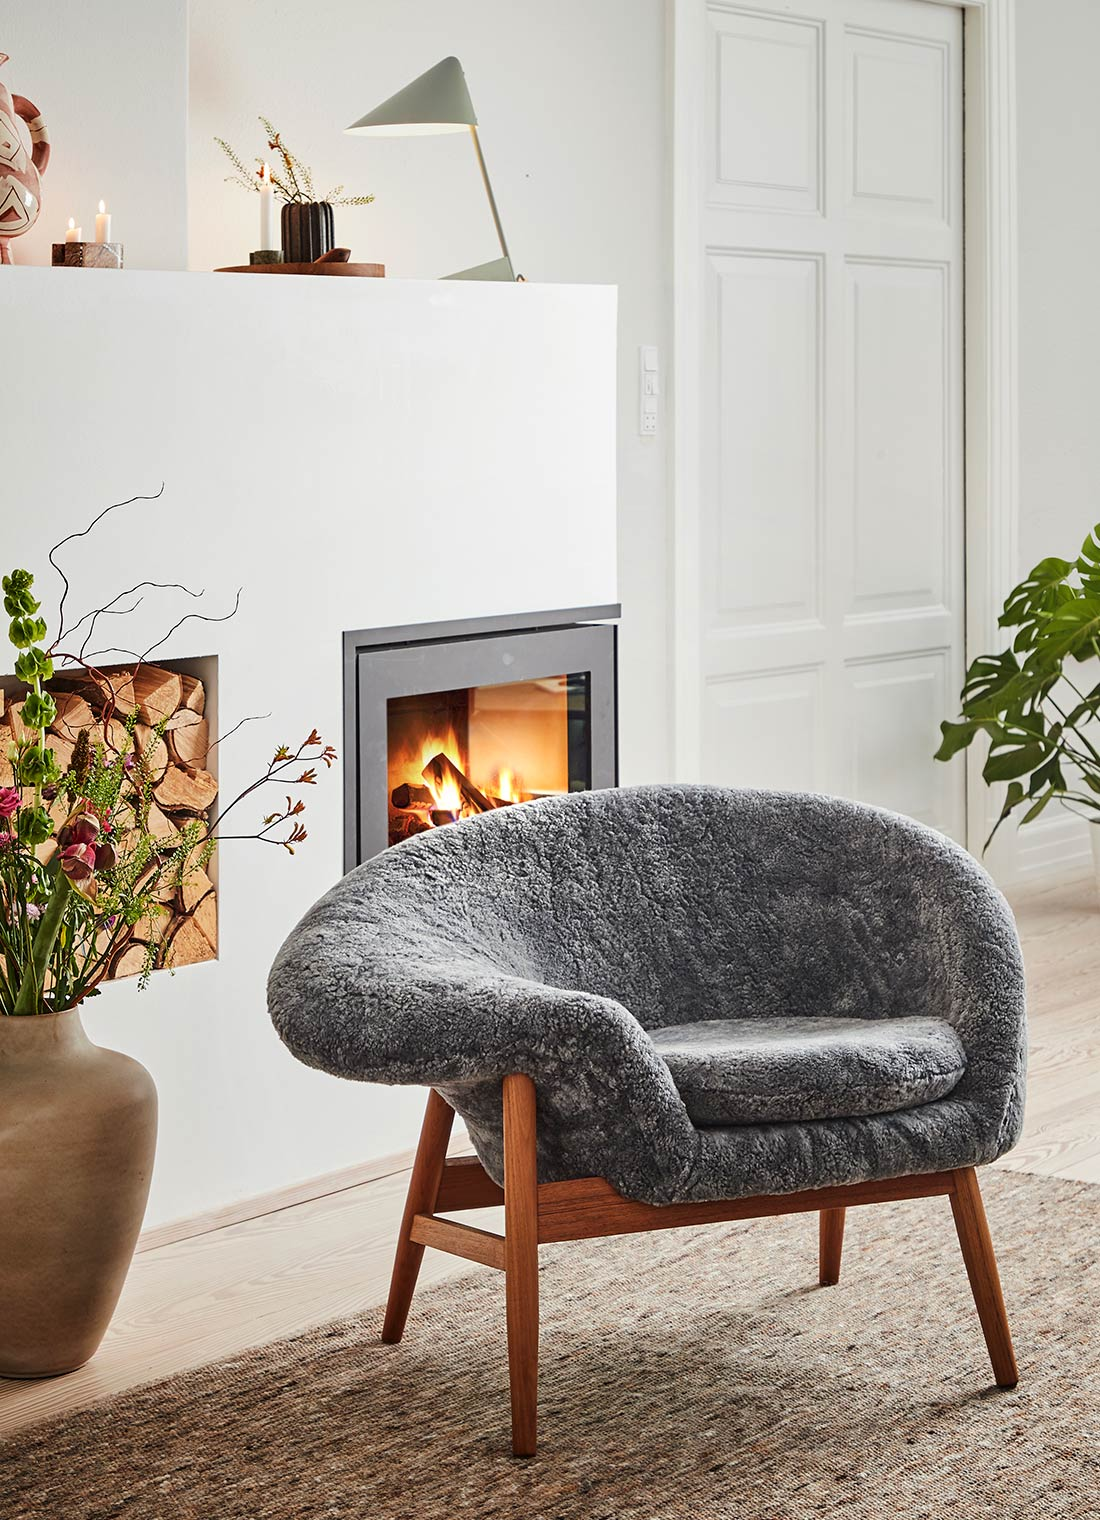 Fried Egg lounge chair in Scandinavian grey wool in a cozy living room.